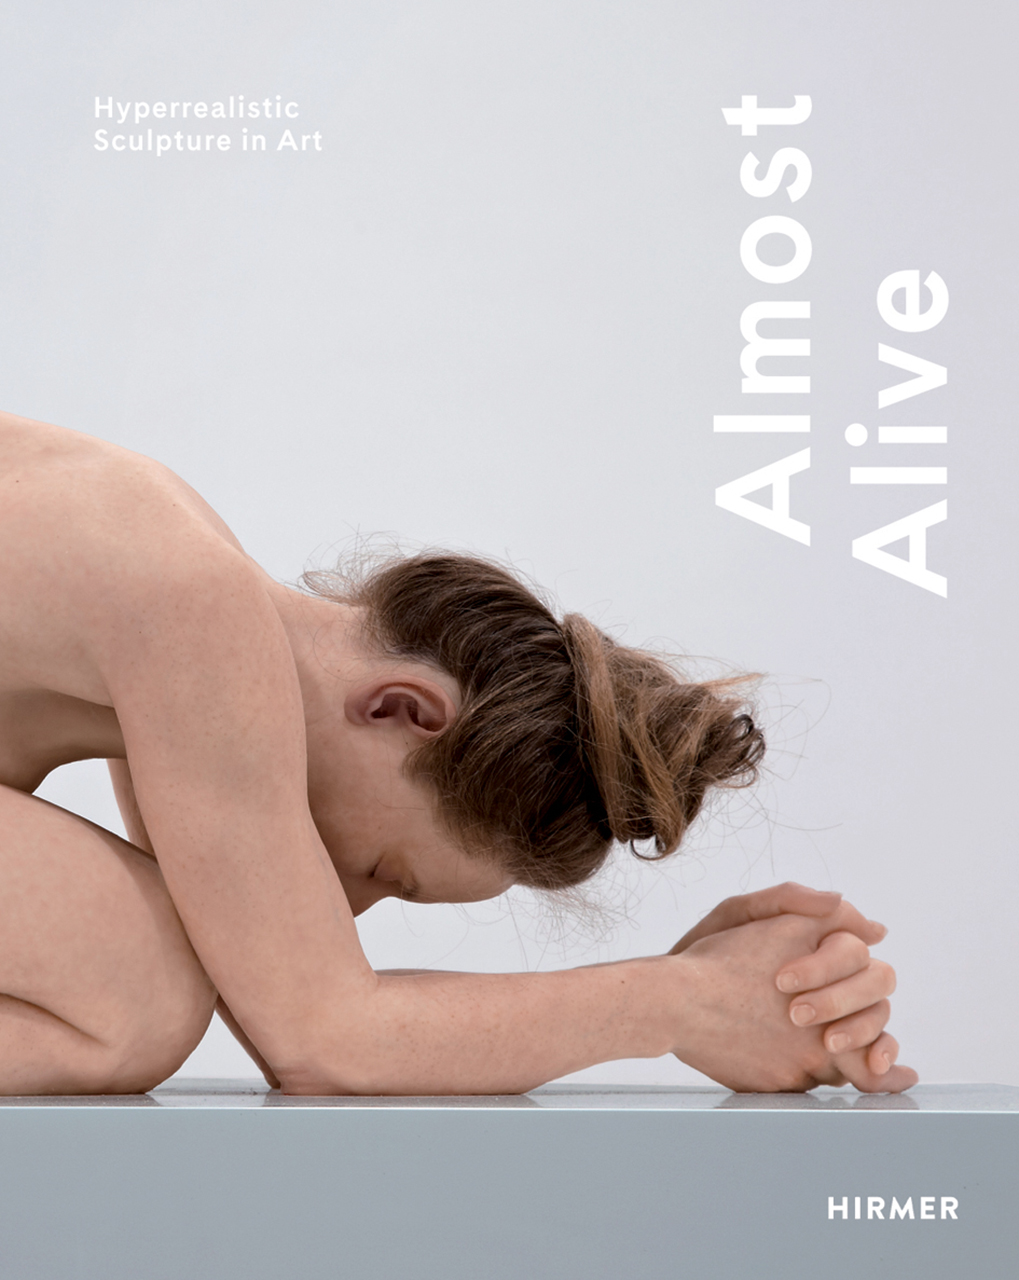 Almost Alive: Hyperrealististic Sculpture in Art